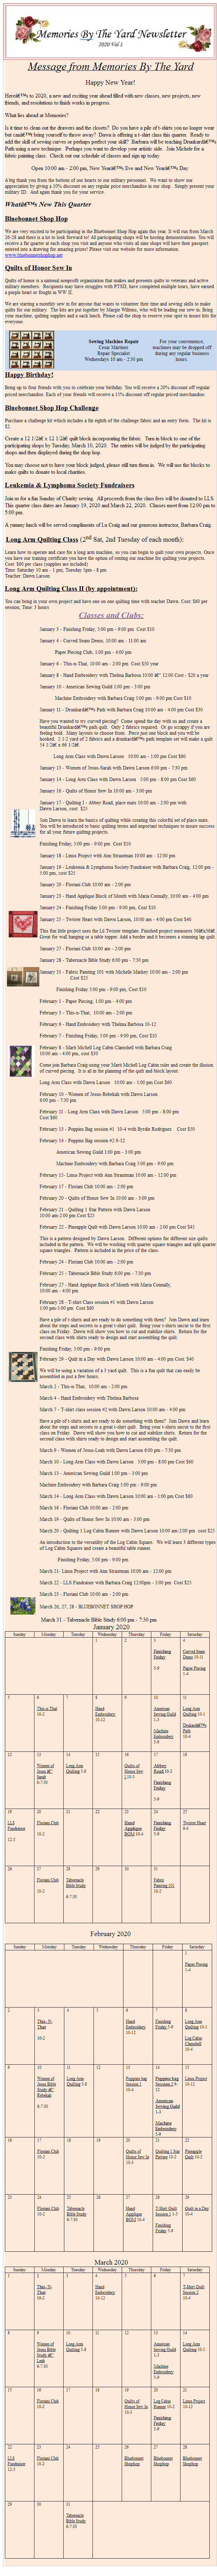 newsletter-january-march.png